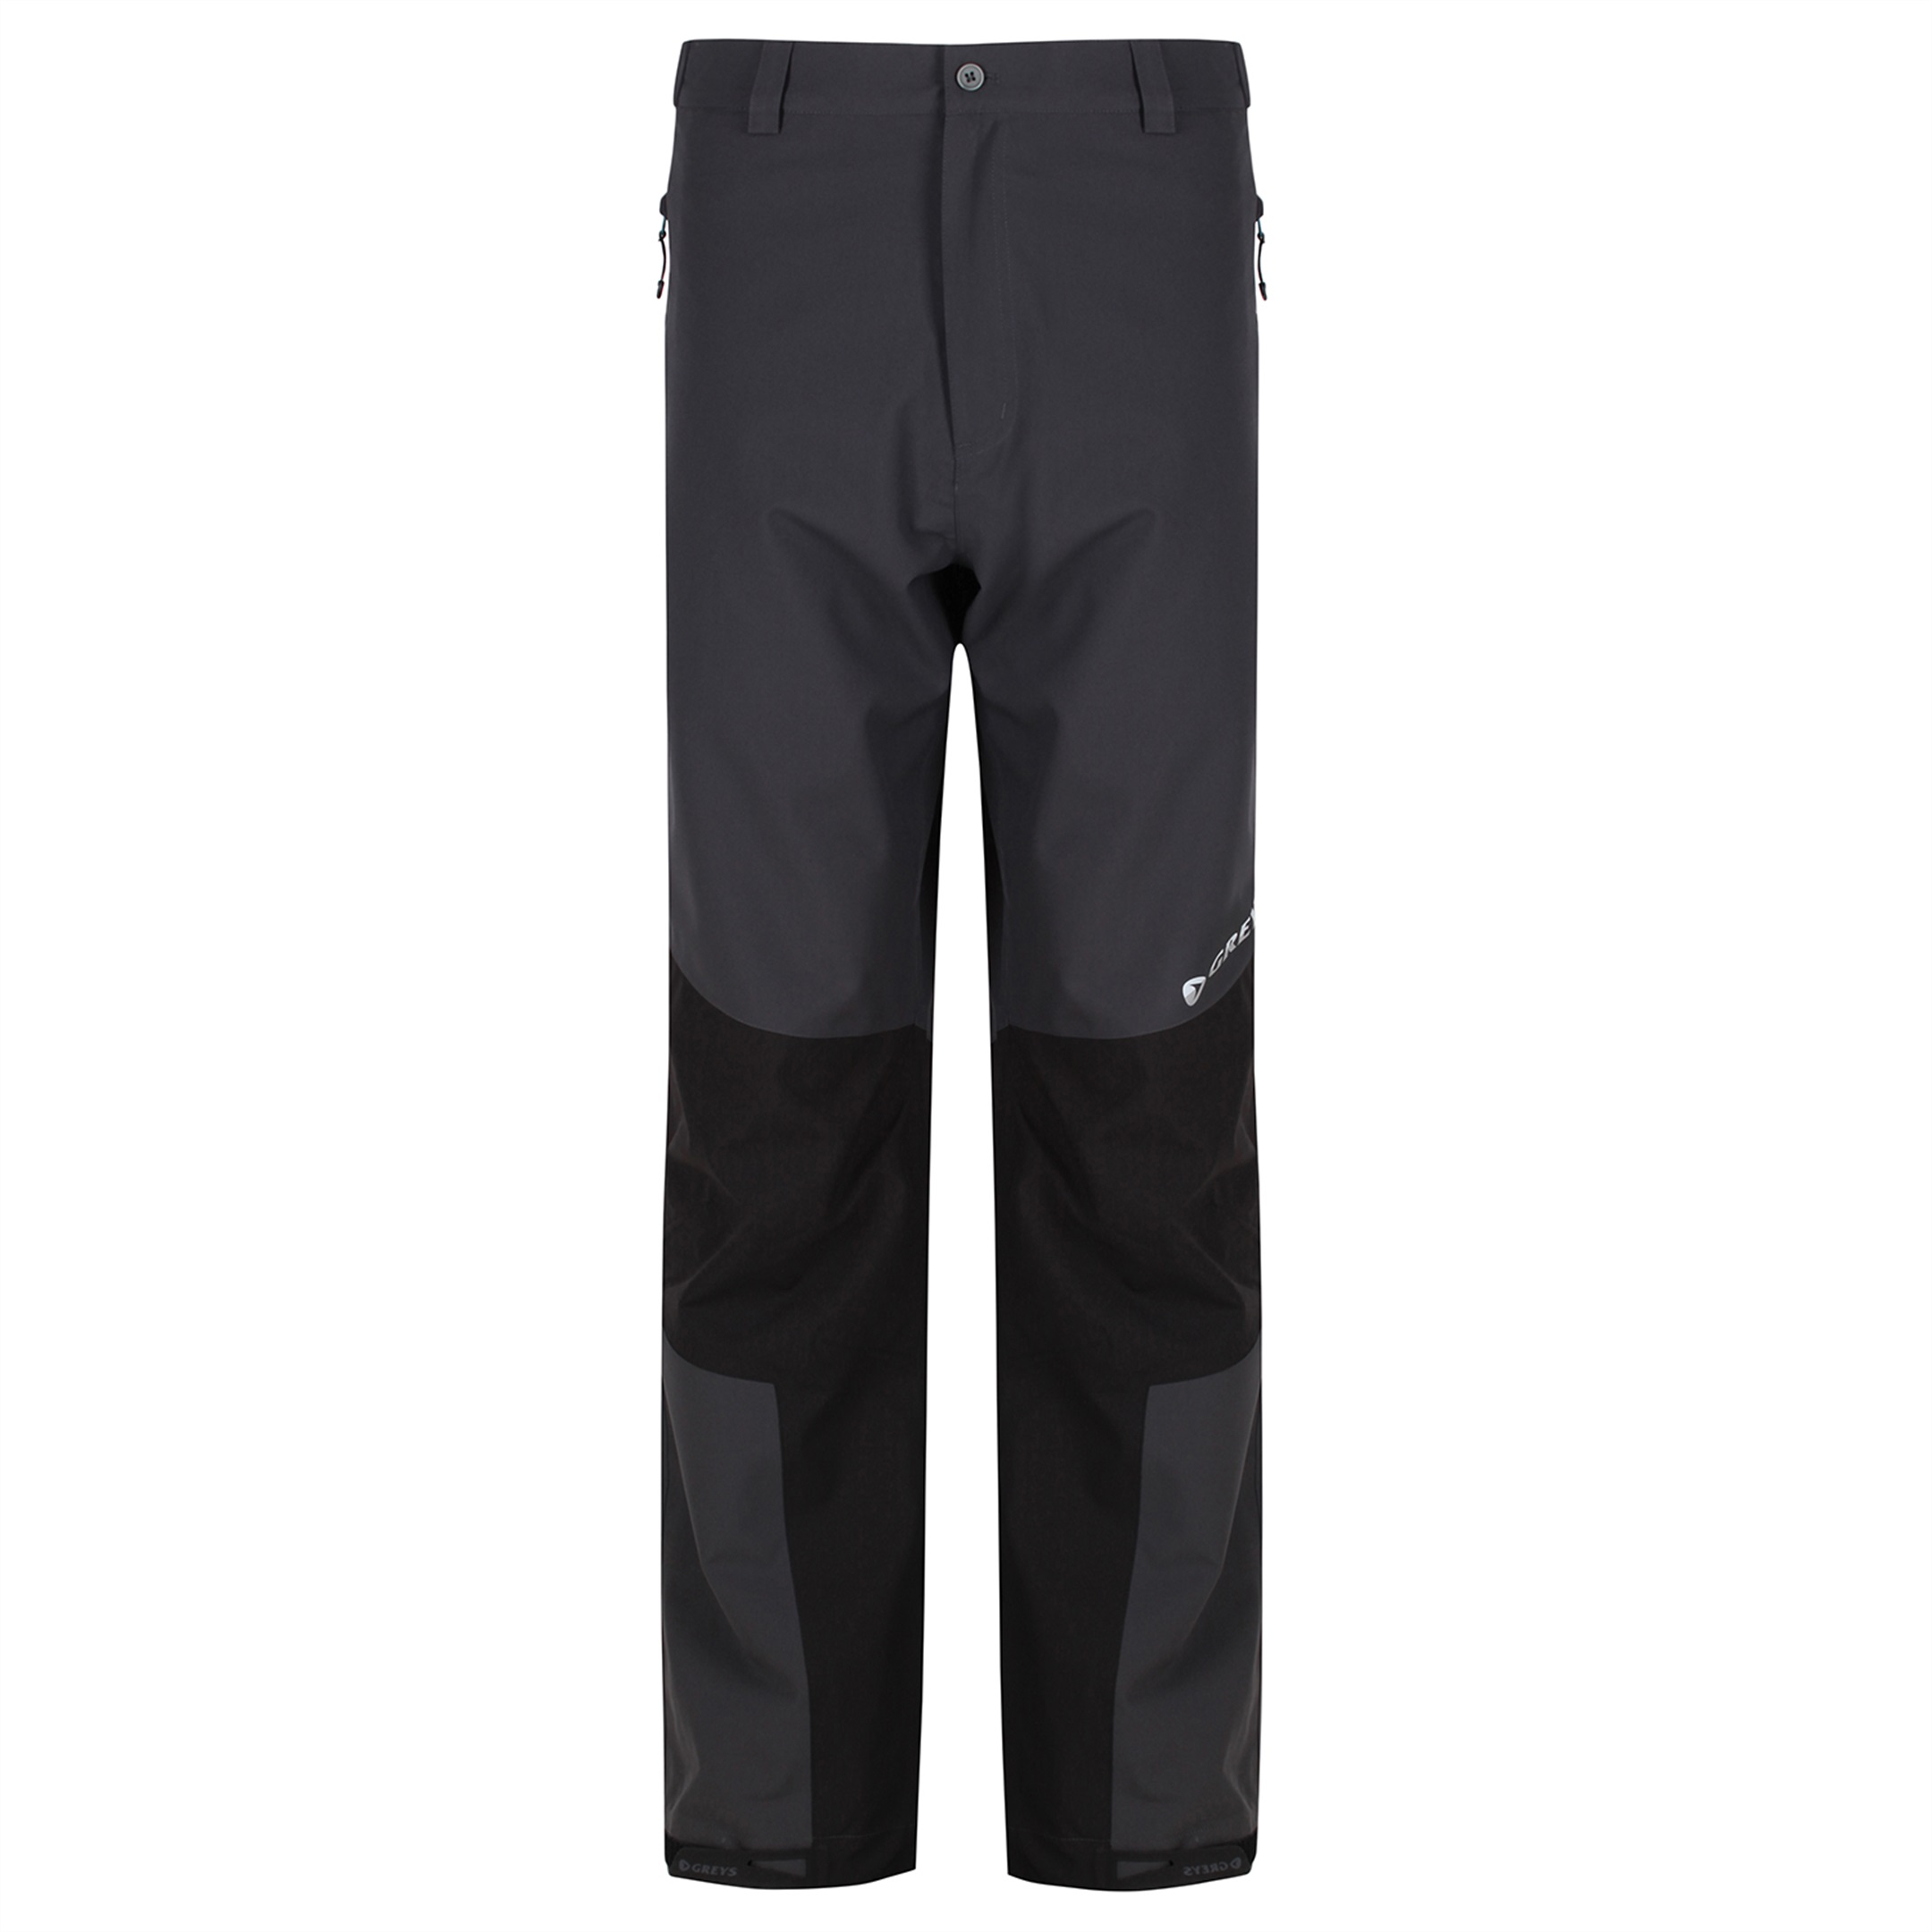 GREYS - Waterproof Trousers